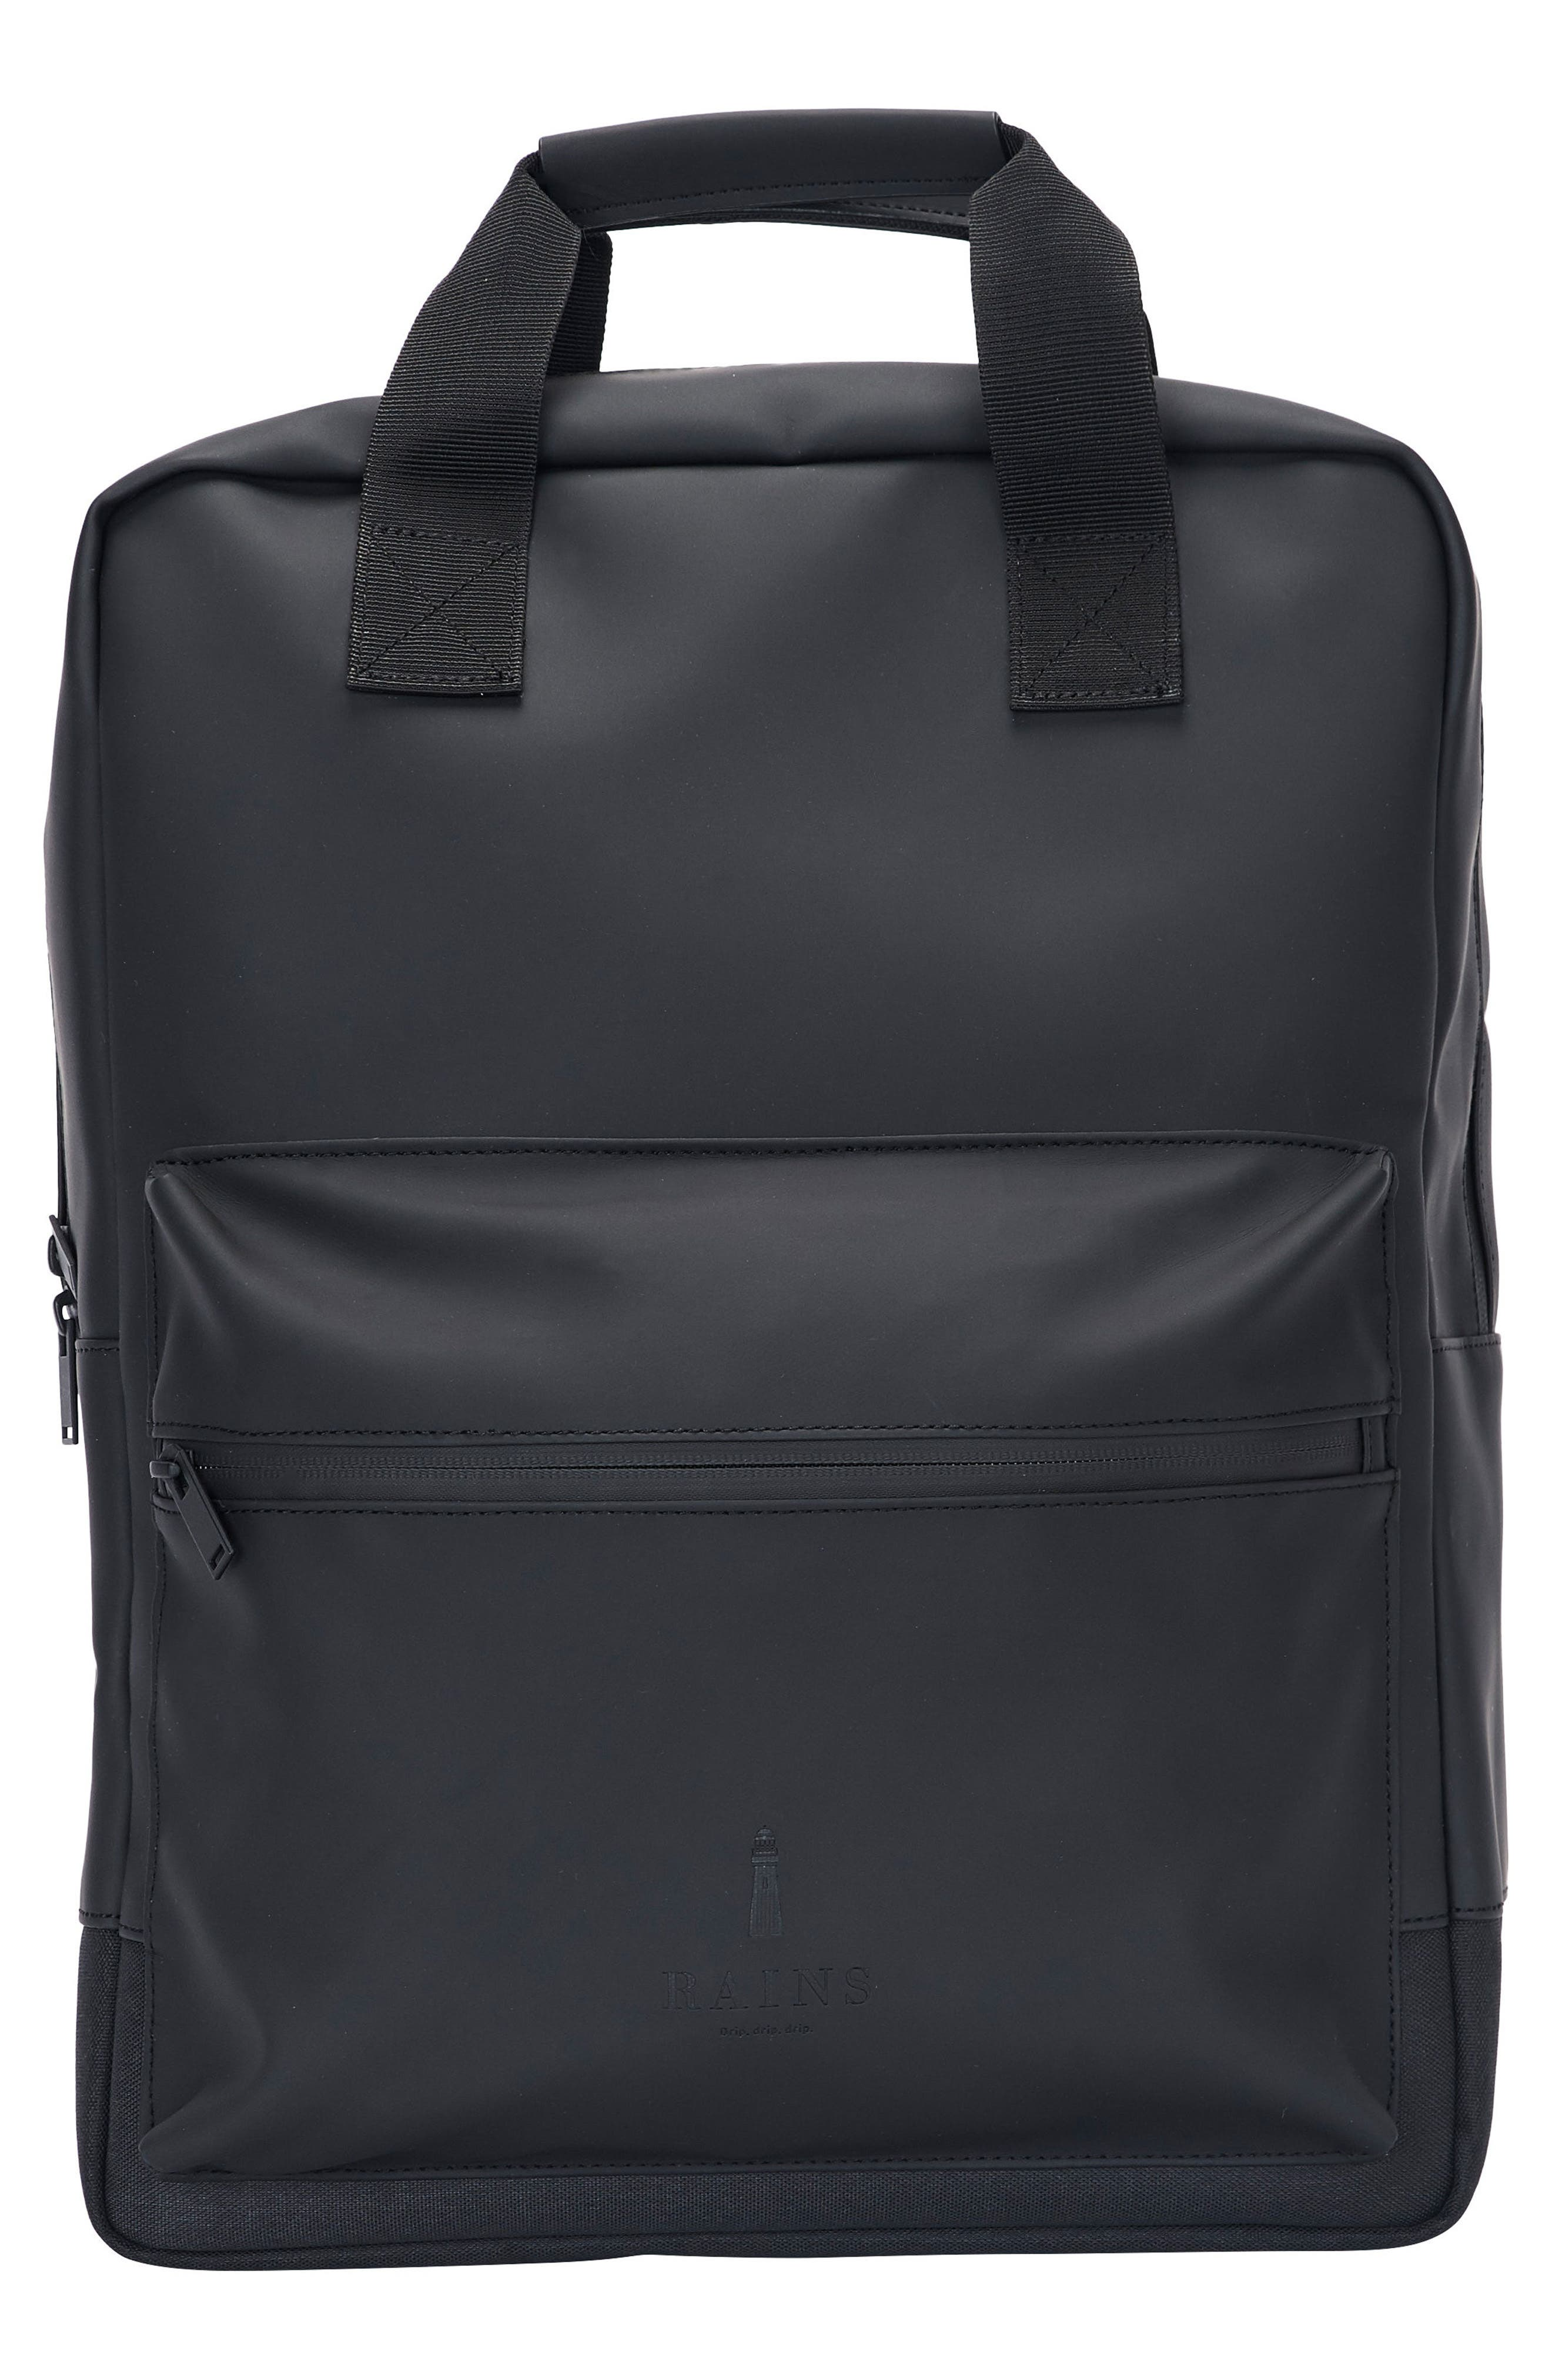 Scout Backpack,                             Main thumbnail 1, color,                             BLACK